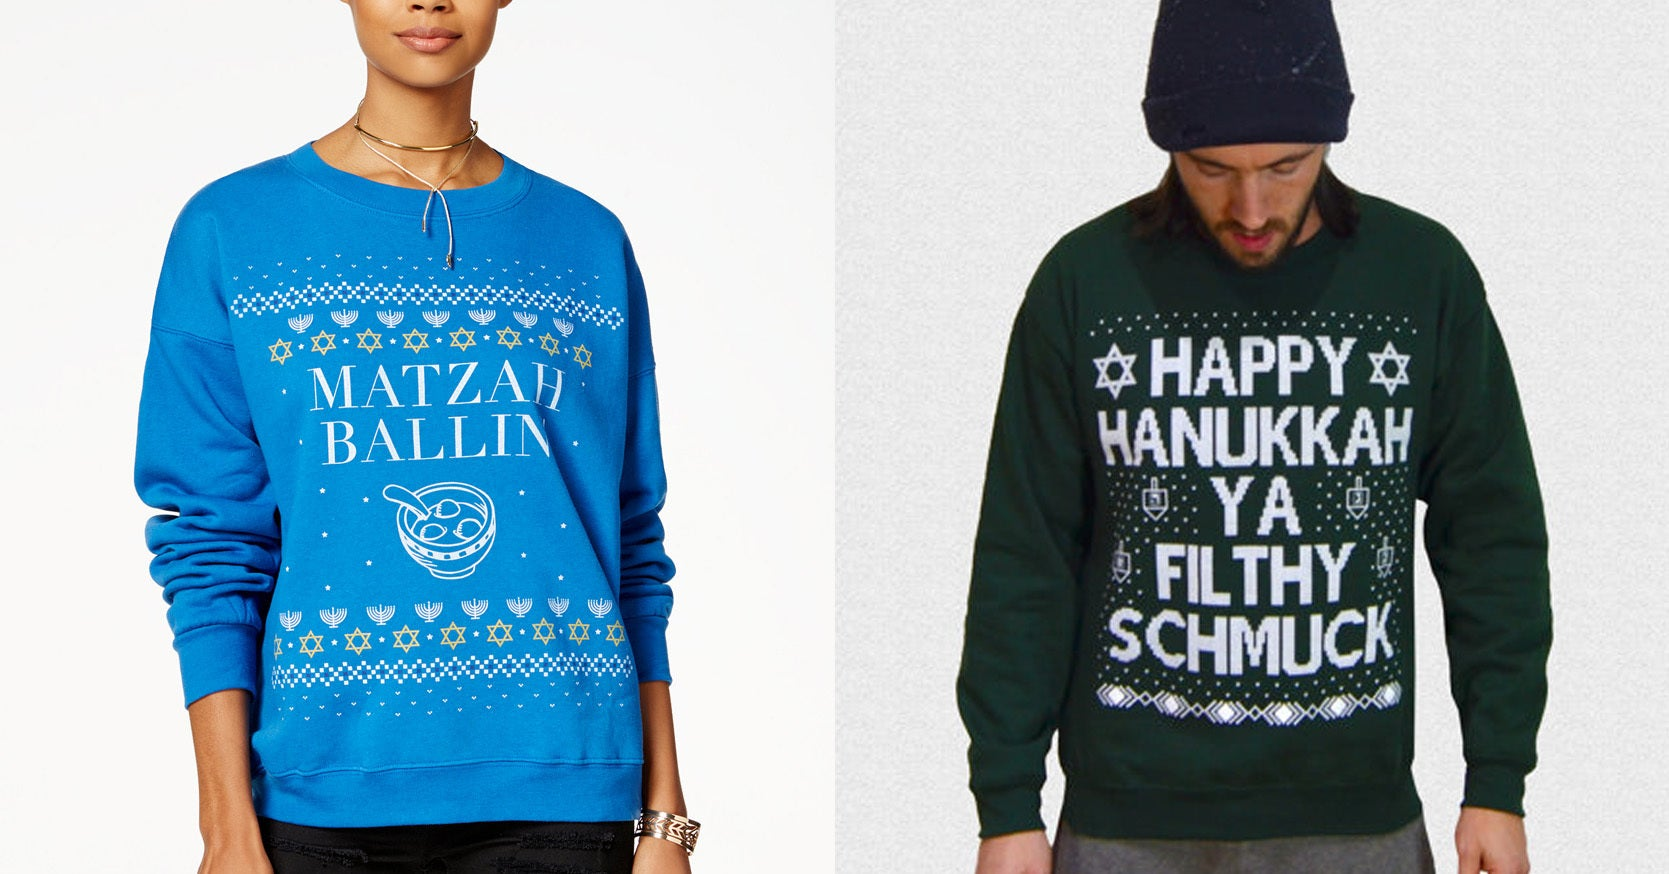 91f8b664 19 Hanukkah Sweaters For The Jew Who Might Feel Left Out At An Ugly  Christmas Sweater Party